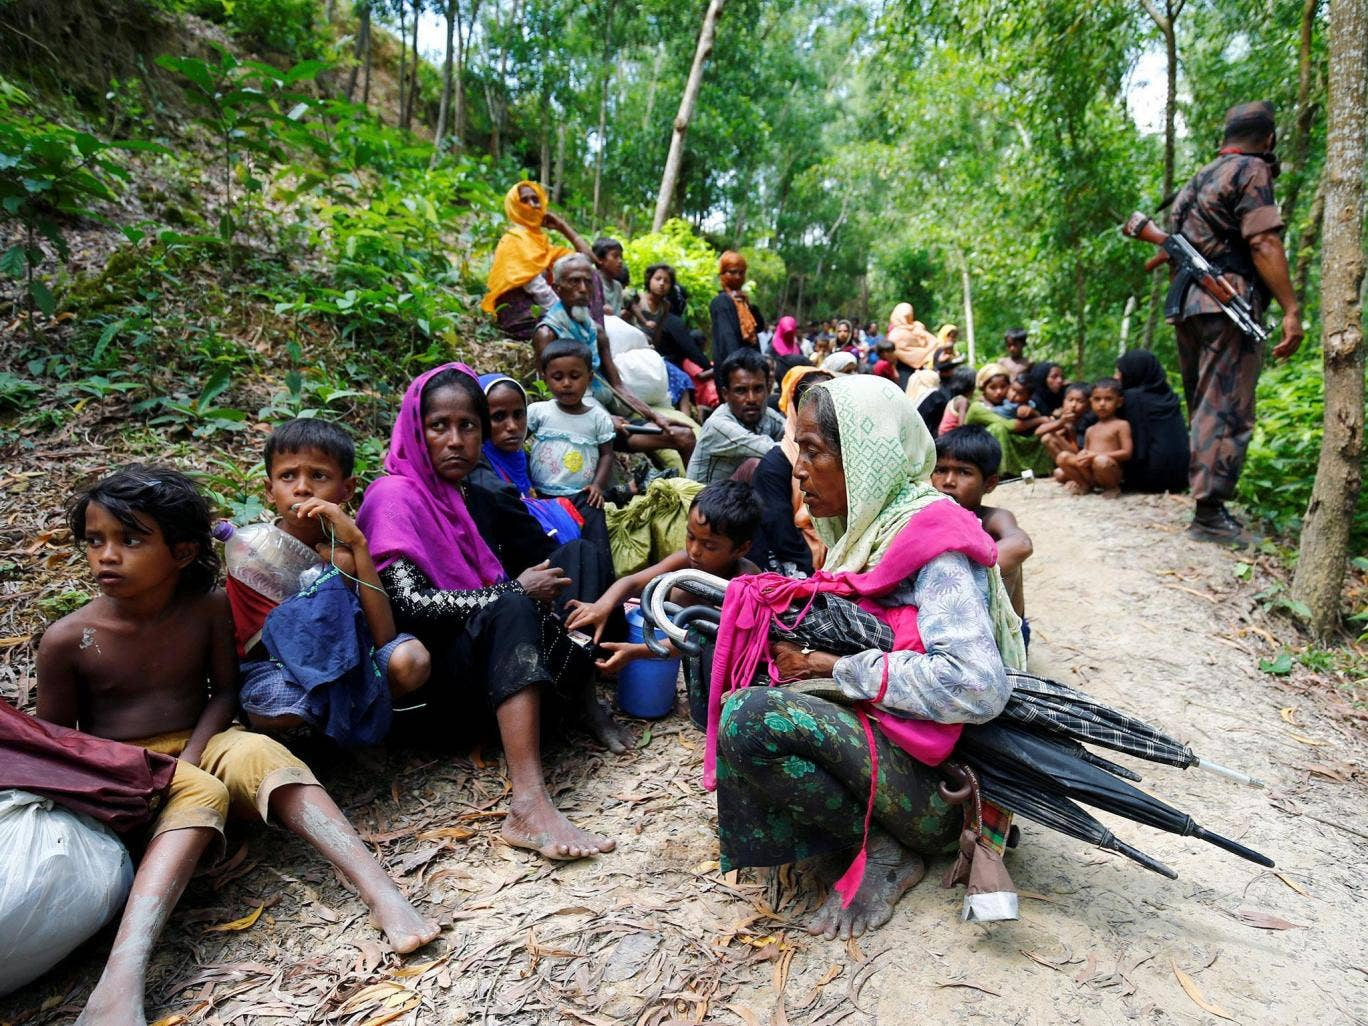 Army Killed A Baby In Crackdown On Rohingya Muslims Villager Claims